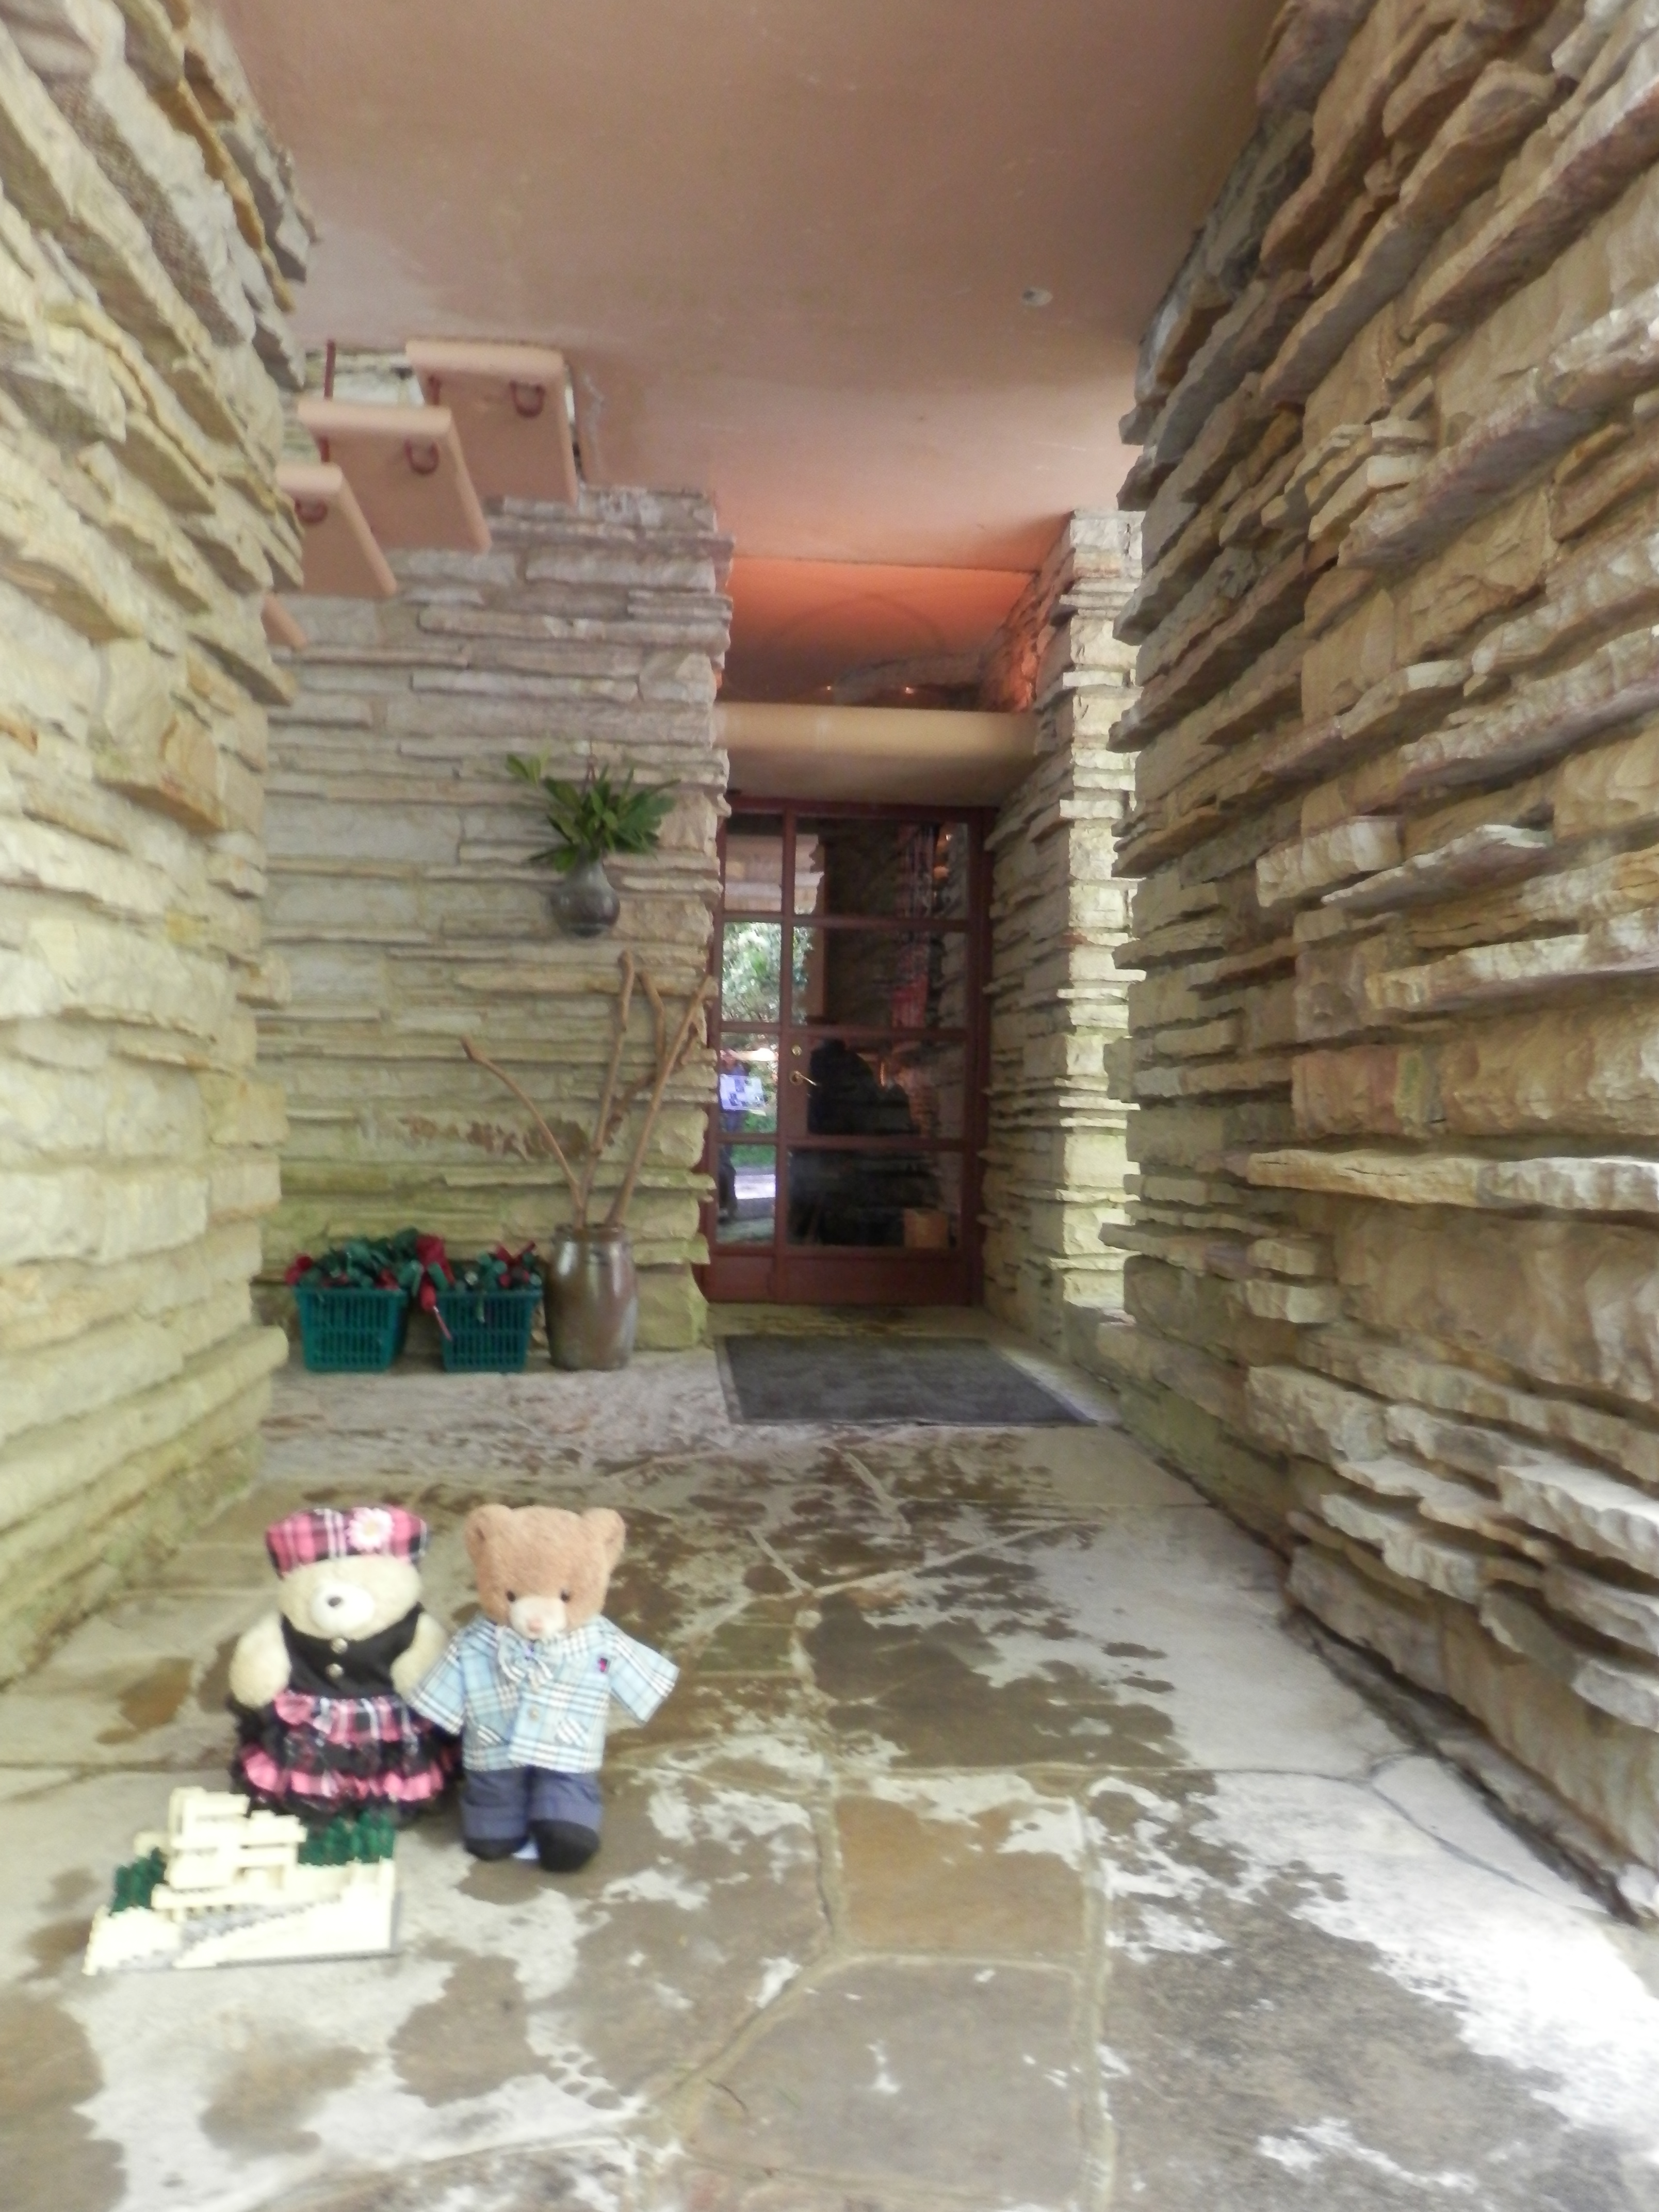 How Long To Tour Fallingwater